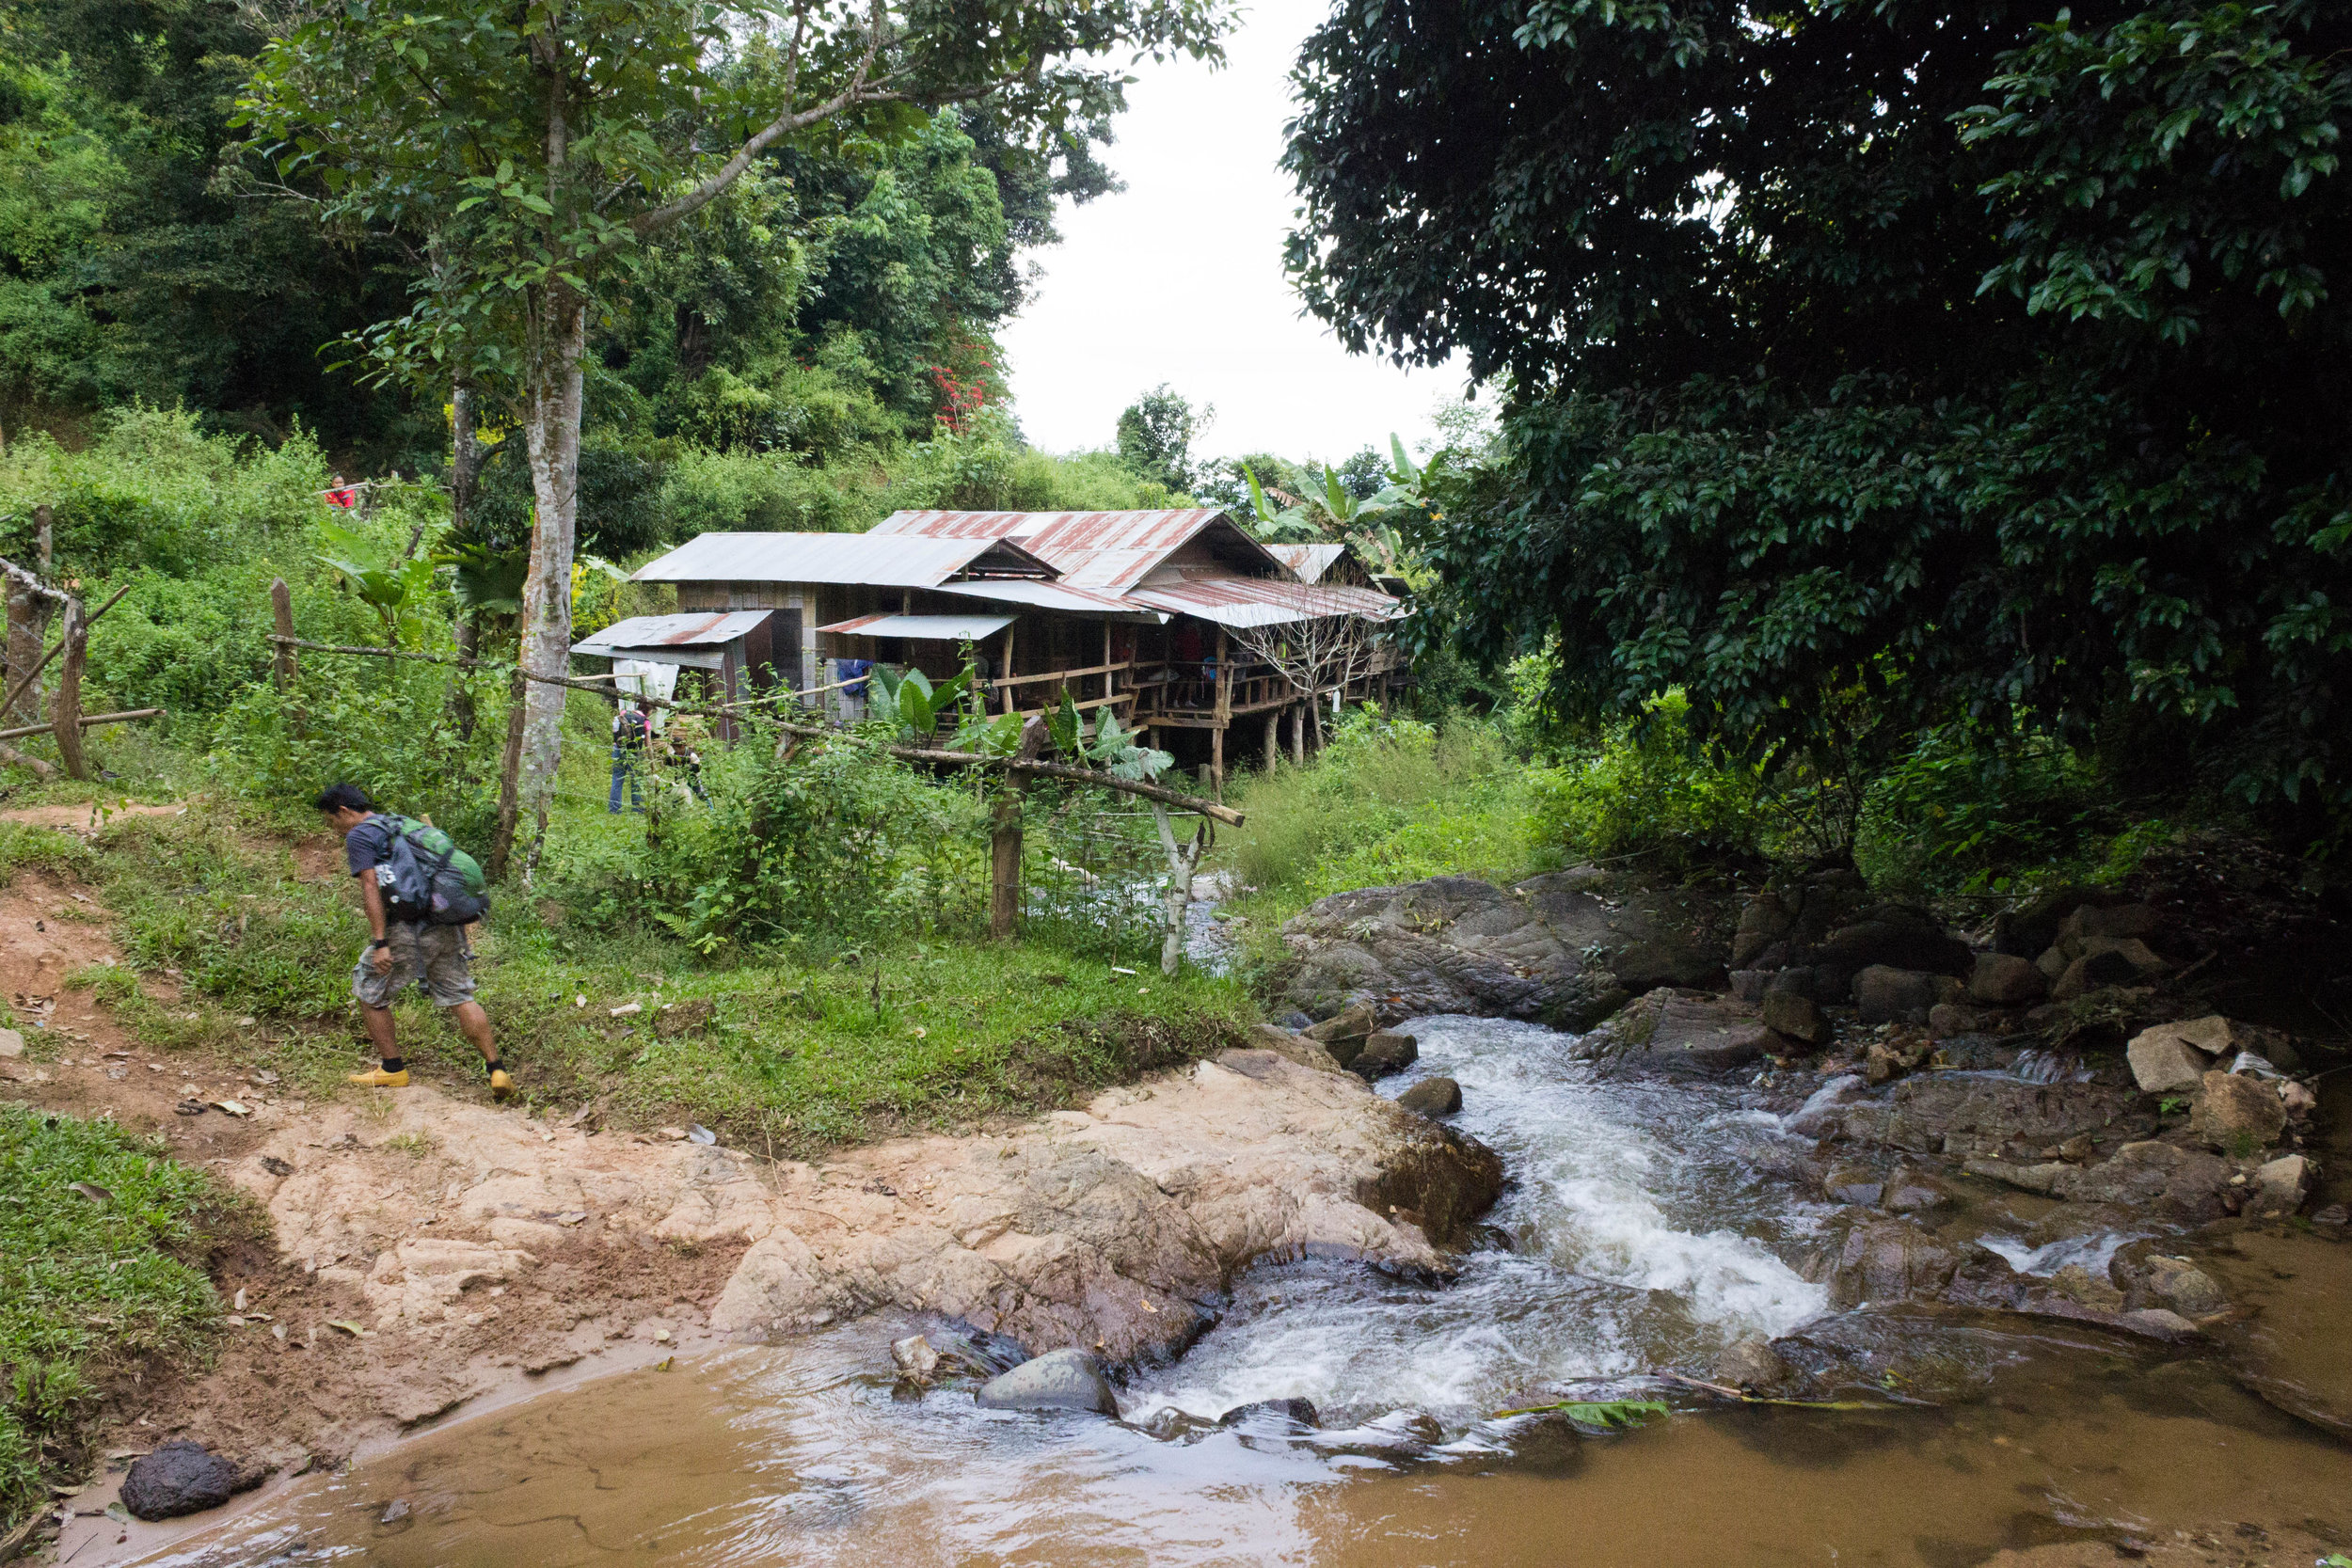 Our home for the night in the Karen village